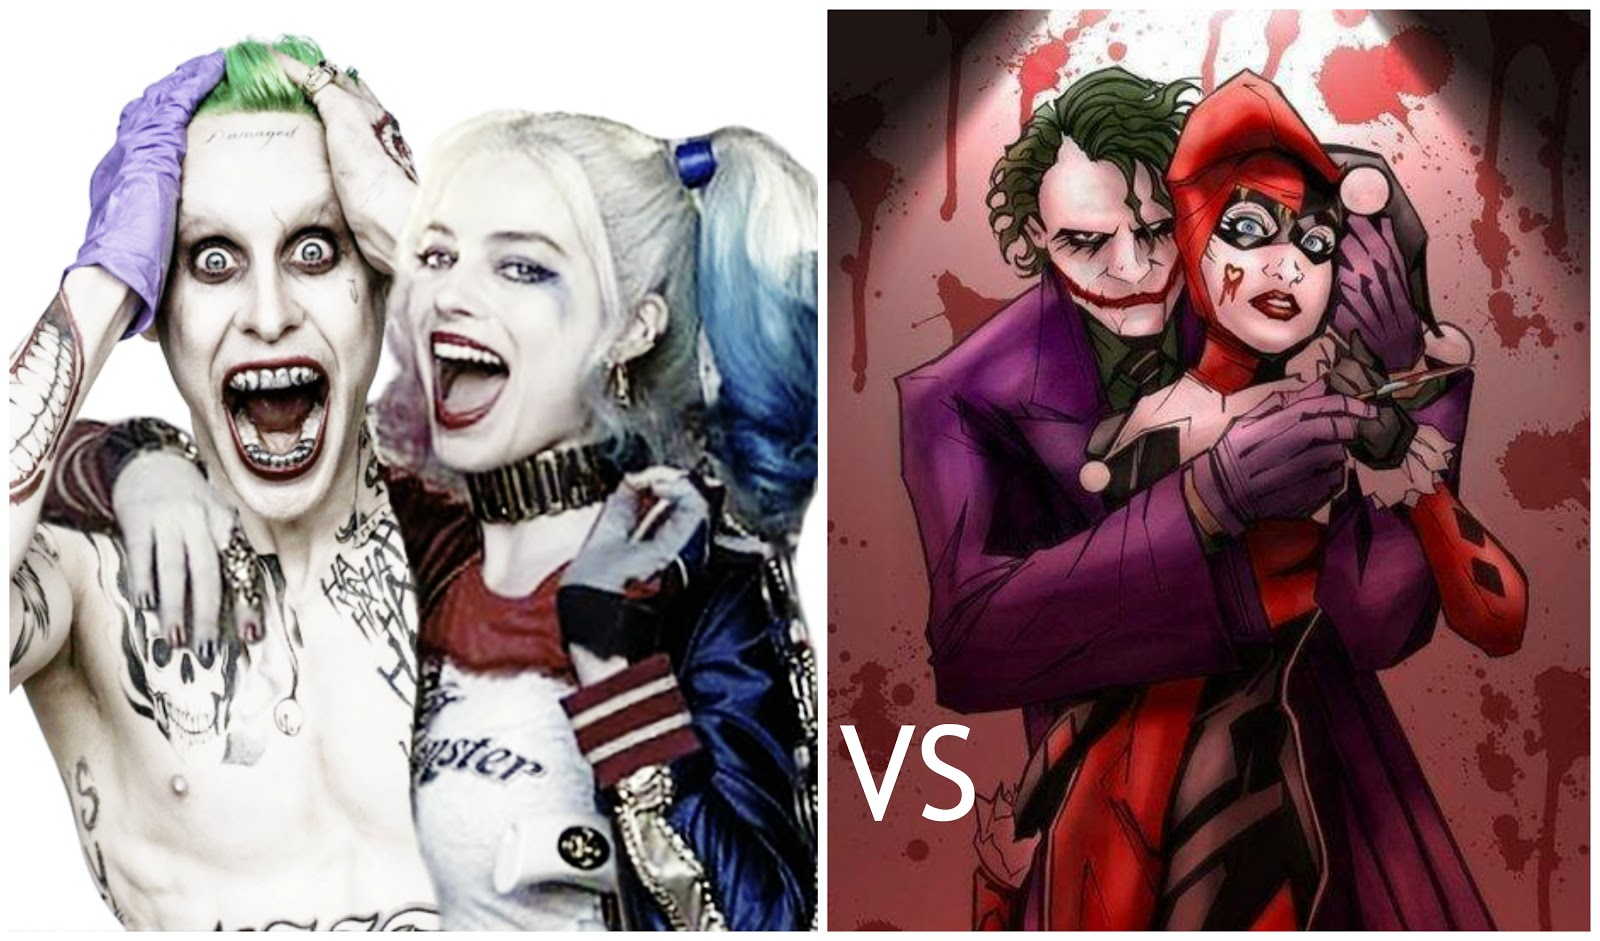 When People Hear A Relationship Like Joker And Harley Statement Their Reactions Are Epic Some Went Aw I Totally Feel You The Others Choked